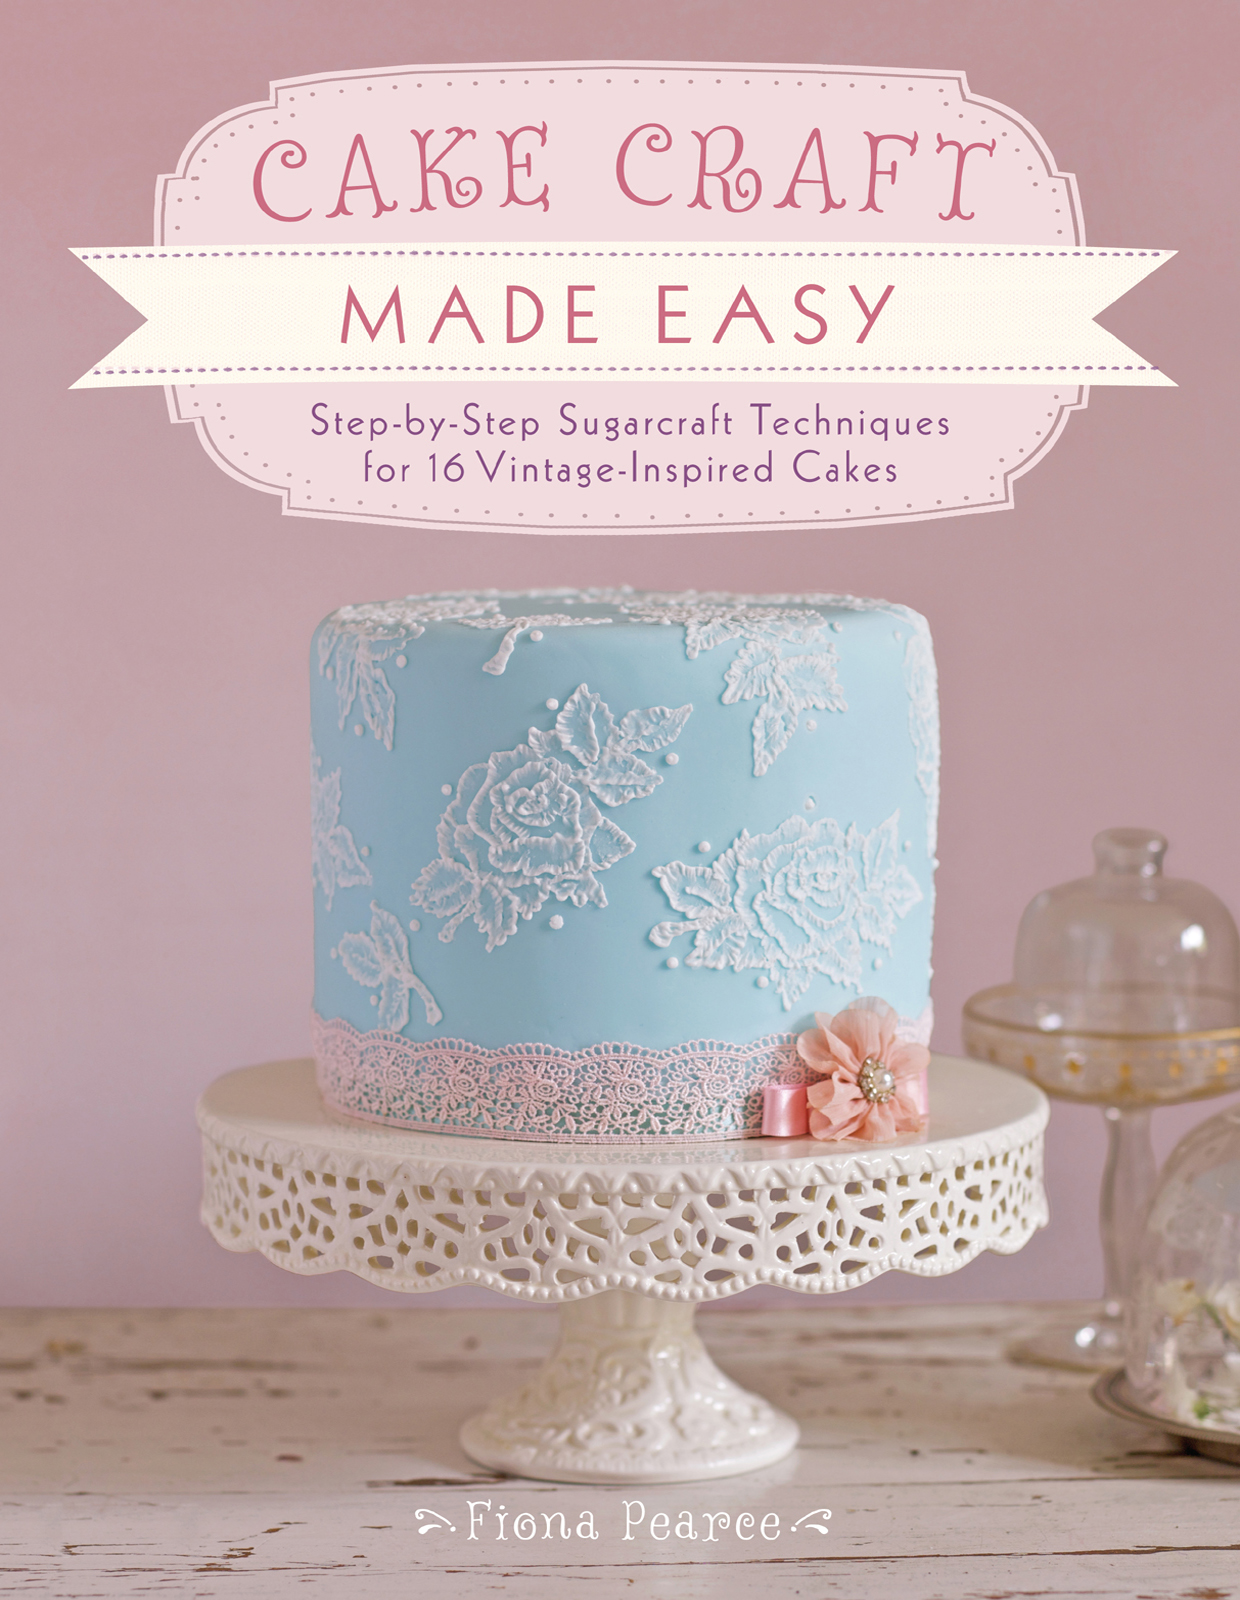 Cake Craft Made Easy Step-by-Step Sugarcraft Techniques for 16 Vintage-Inspired Cakes